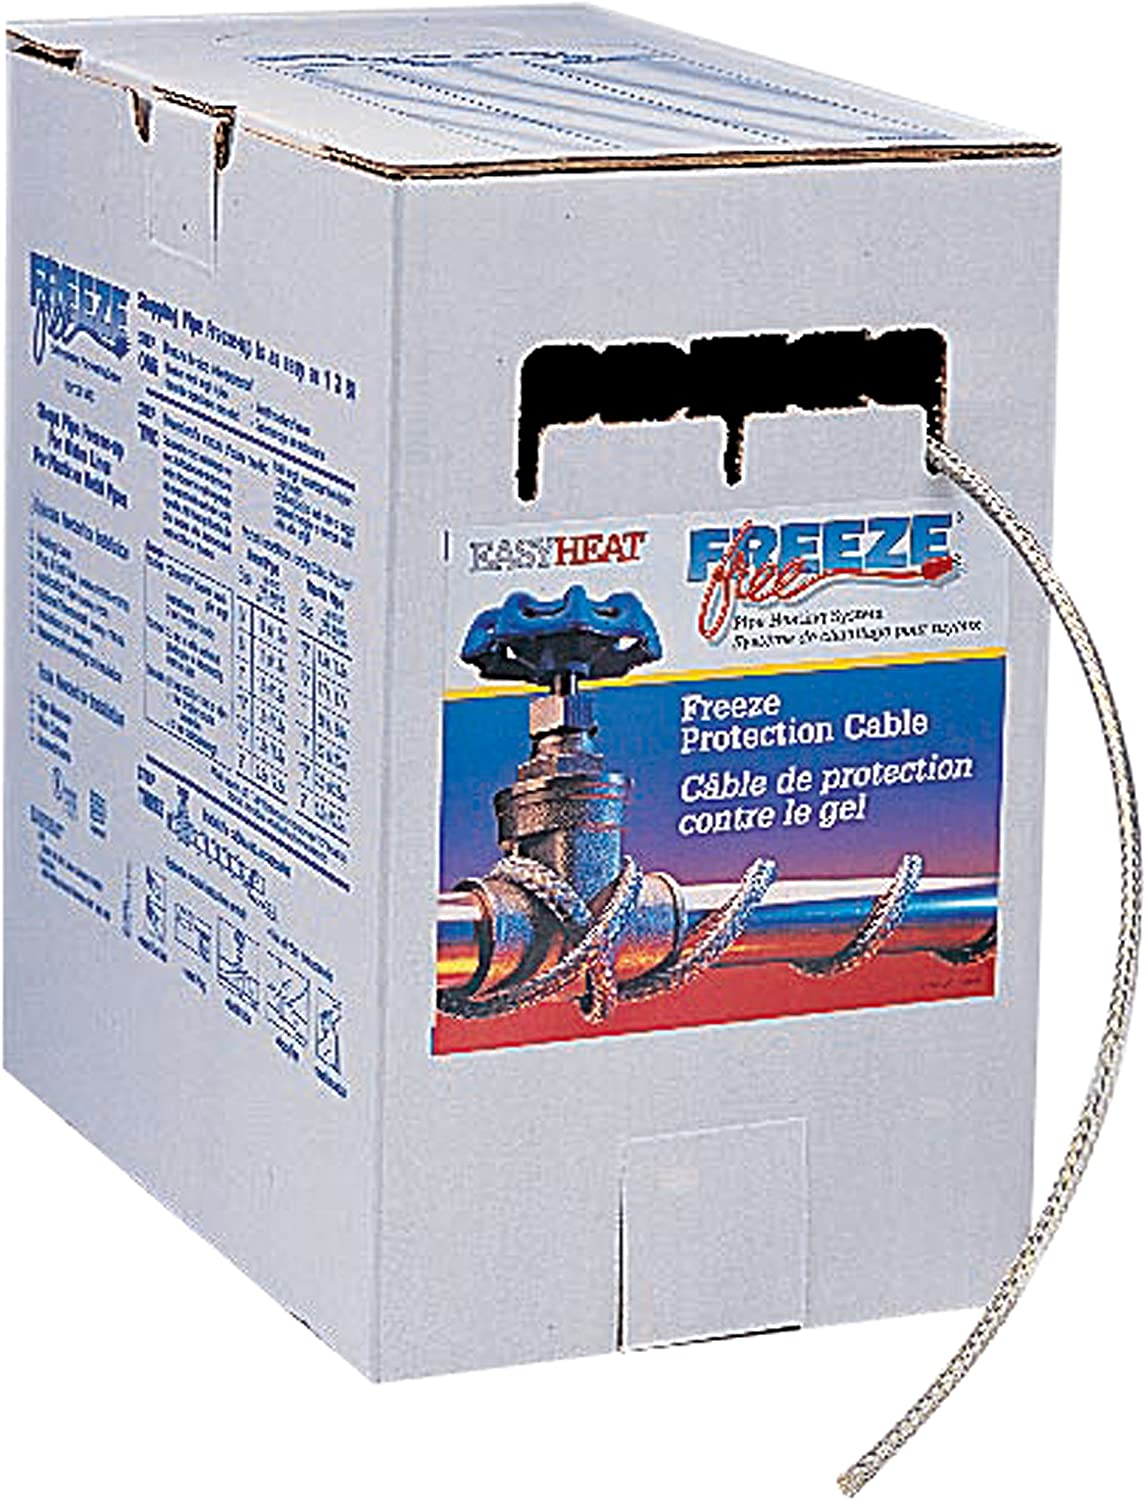 EasyHeat 2302 Freeze Free Heating Cable - 300'